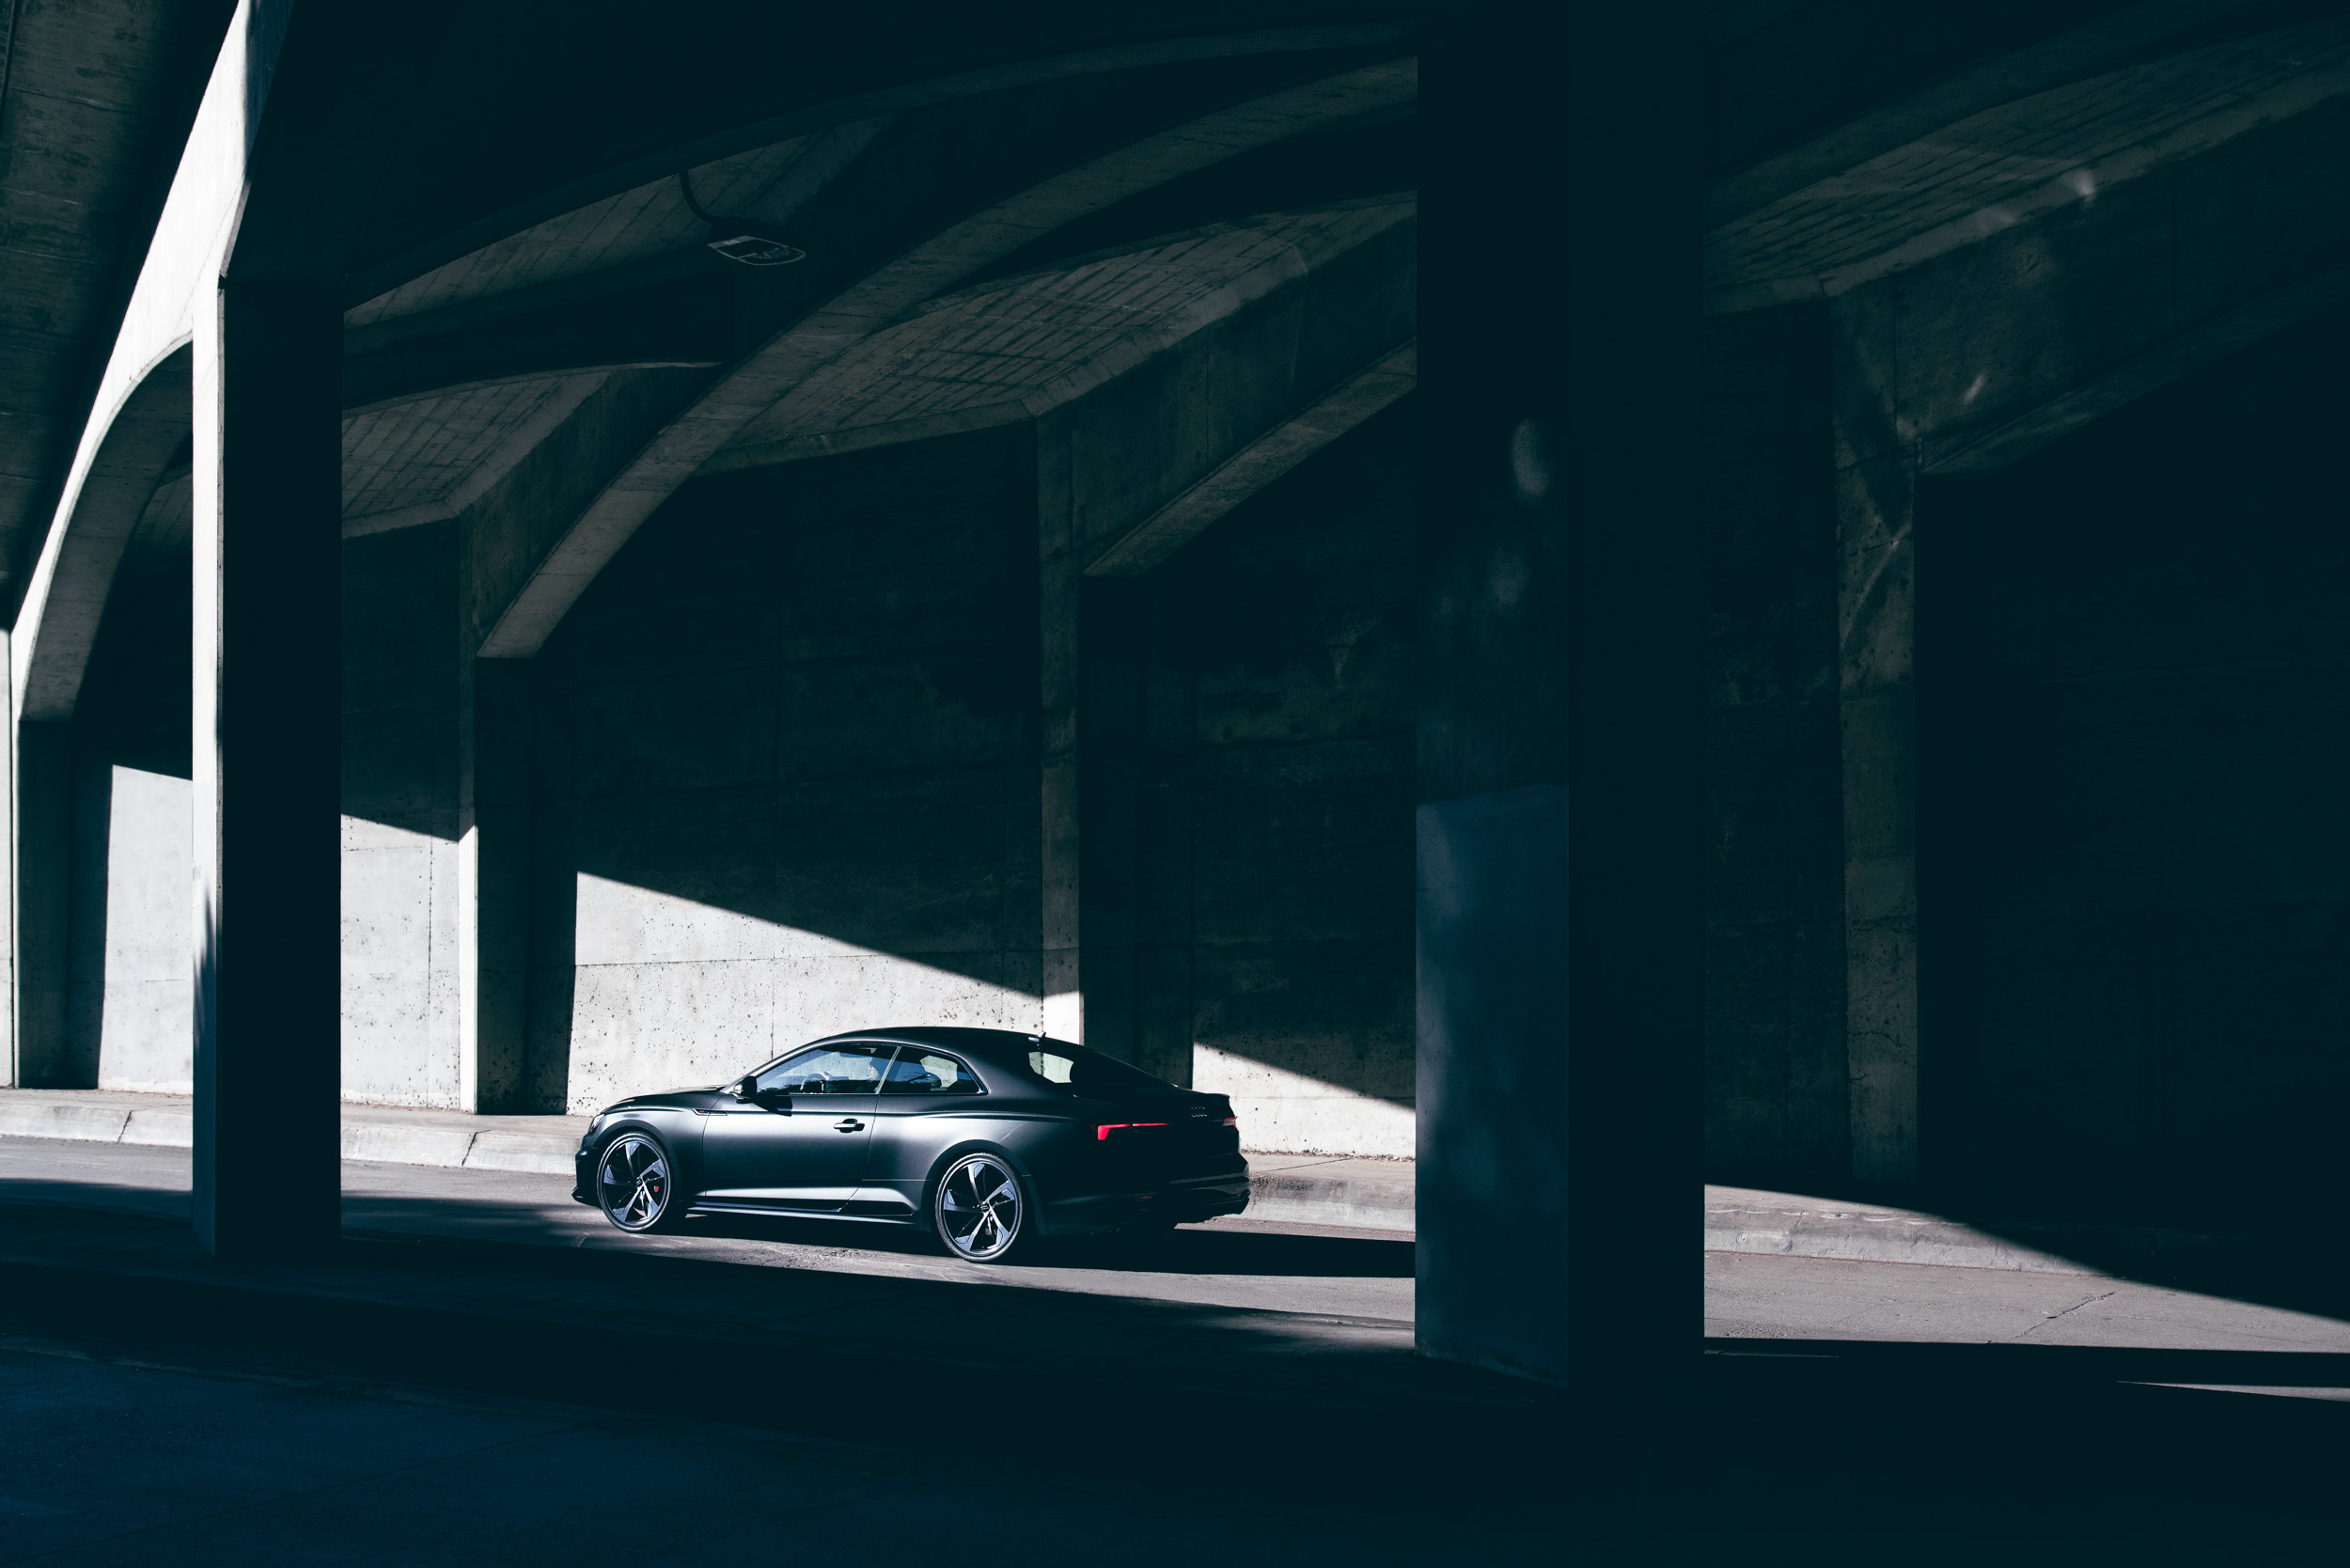 A grey Audi R S5 drives emerges from the shadow of a concrete bridge